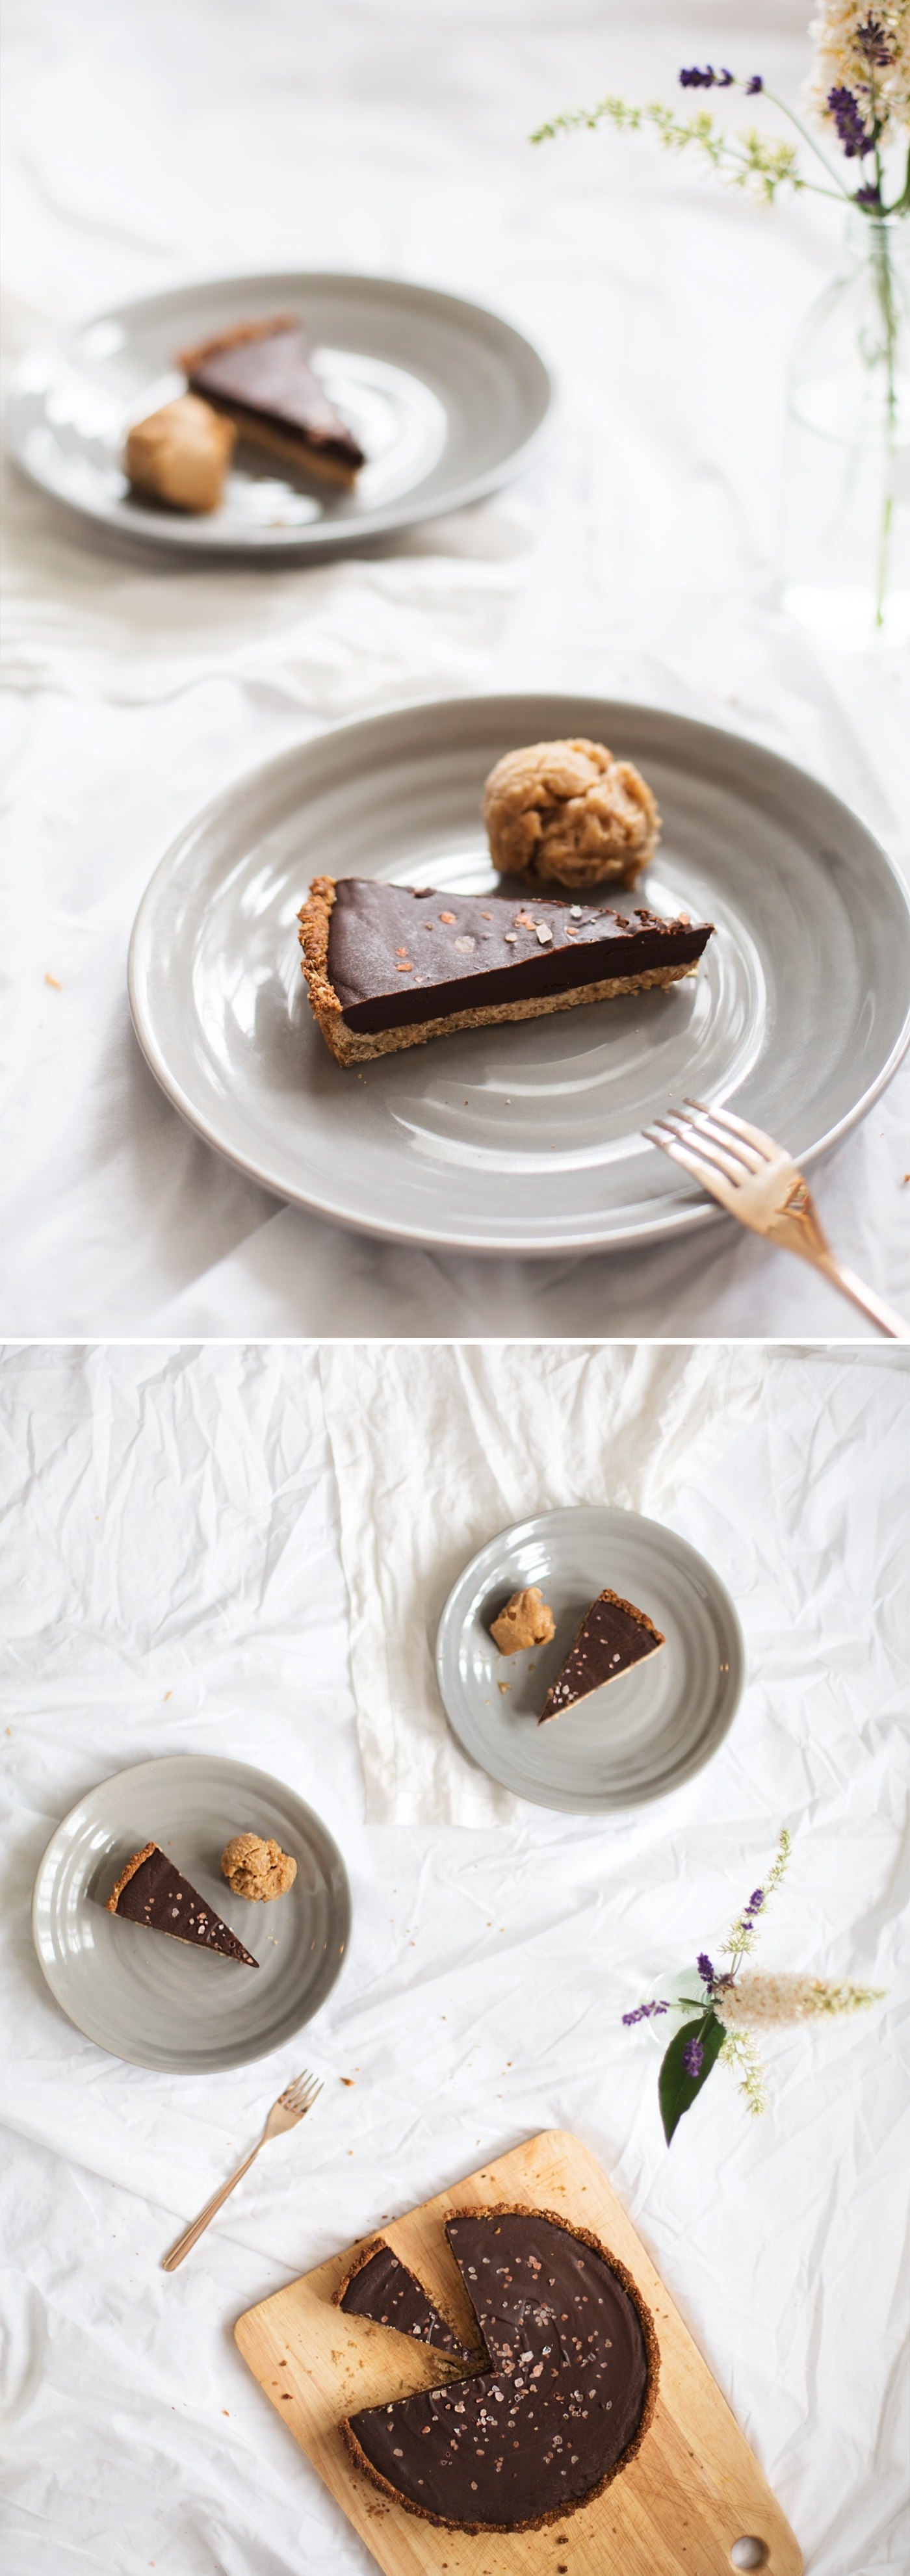 easy gluten free & vegan chocolate dessert